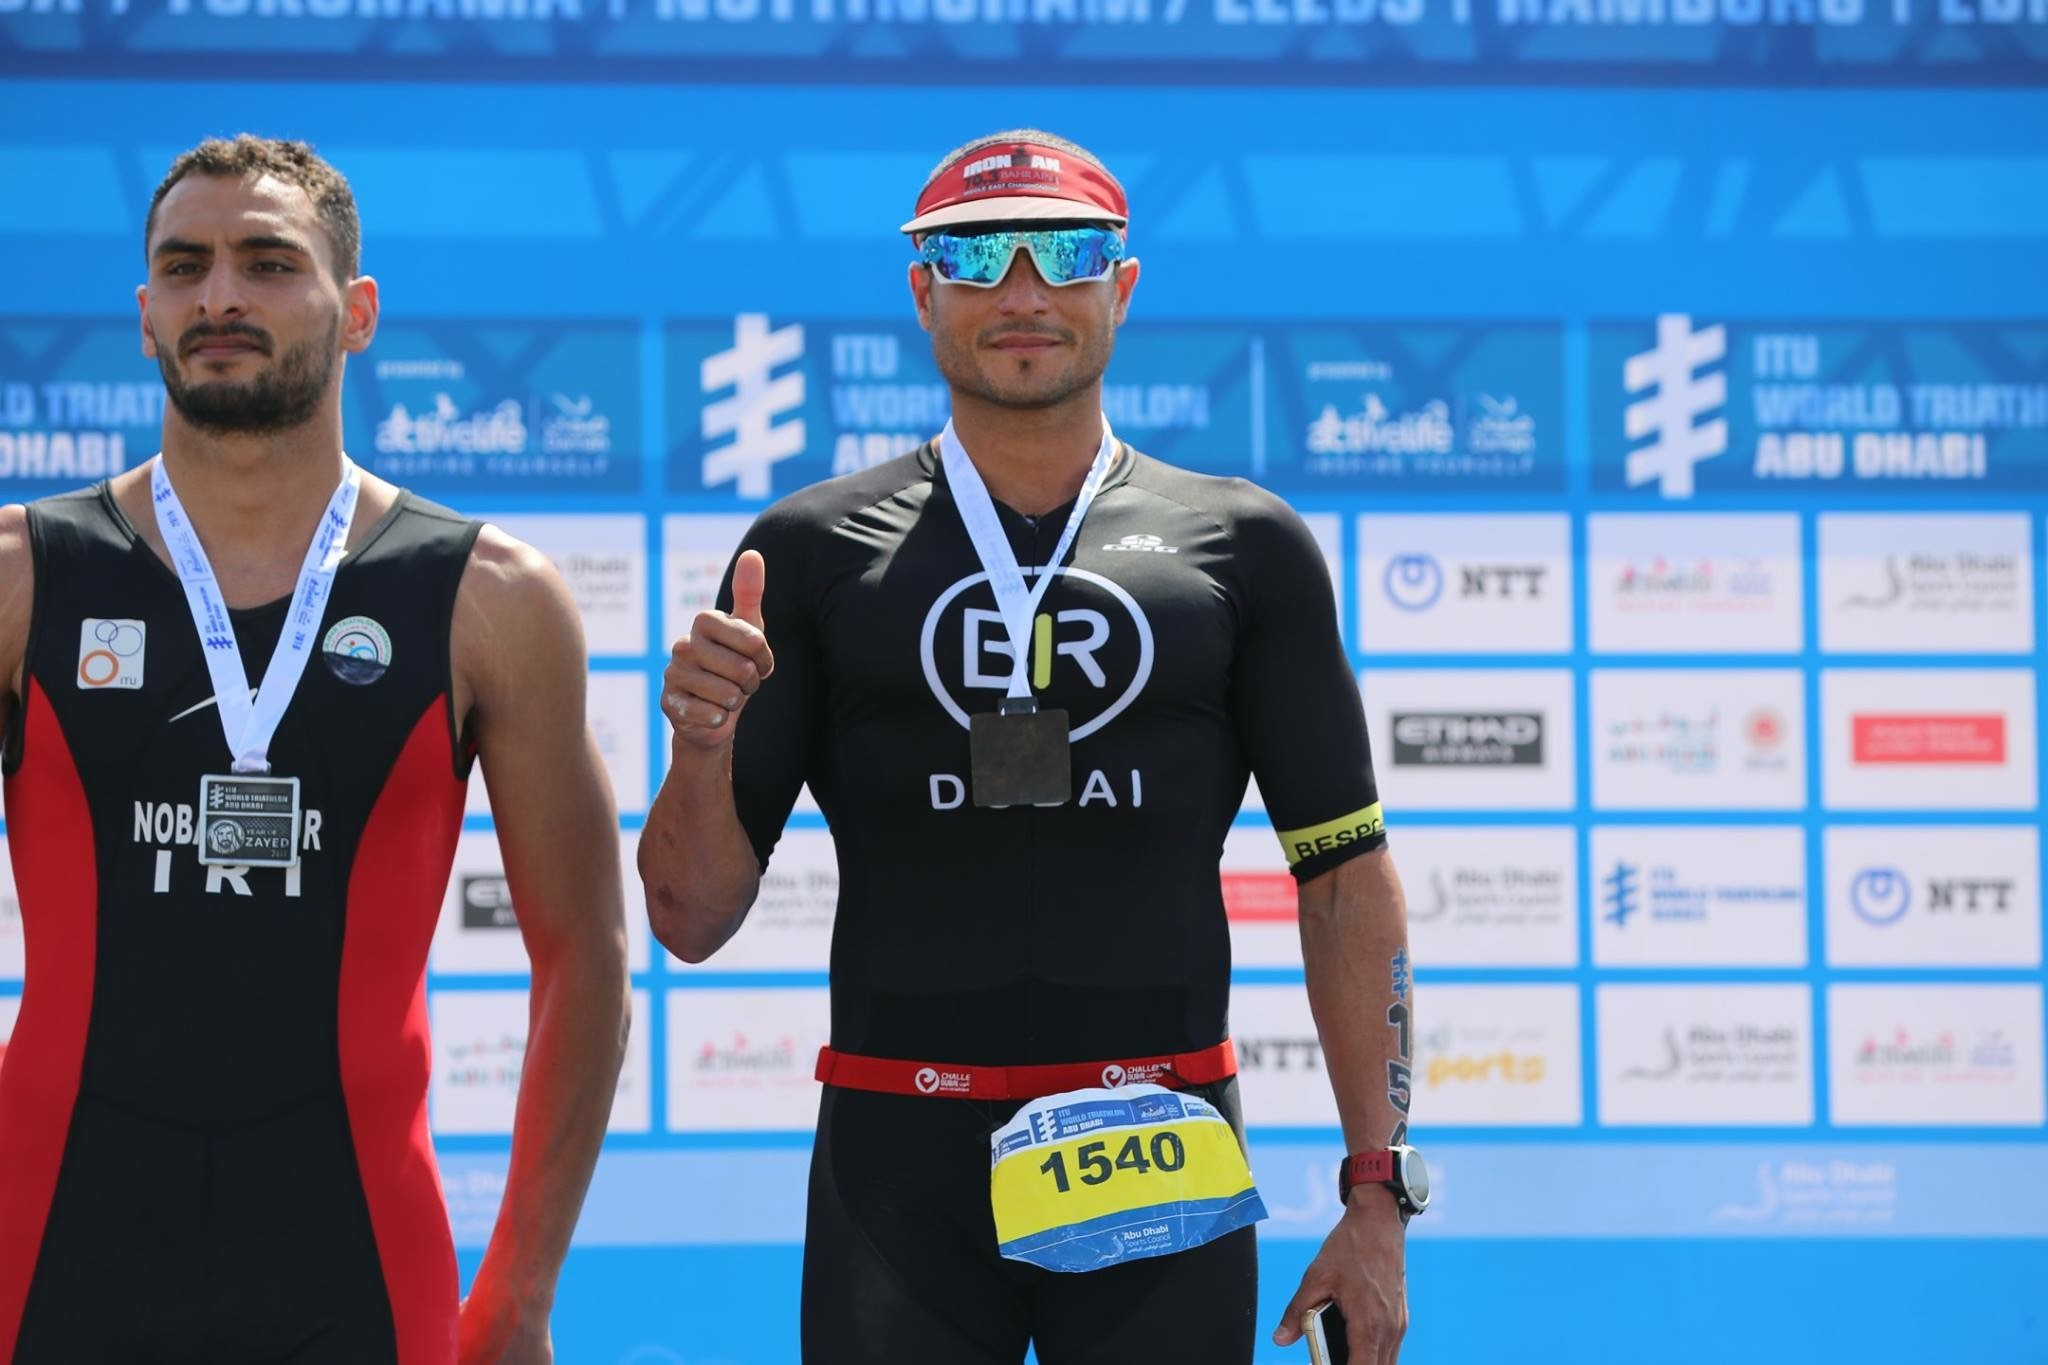 Mohamed Ali Belal (pictured right) after winning the ITU Olympic distance race in Abu Dhabi